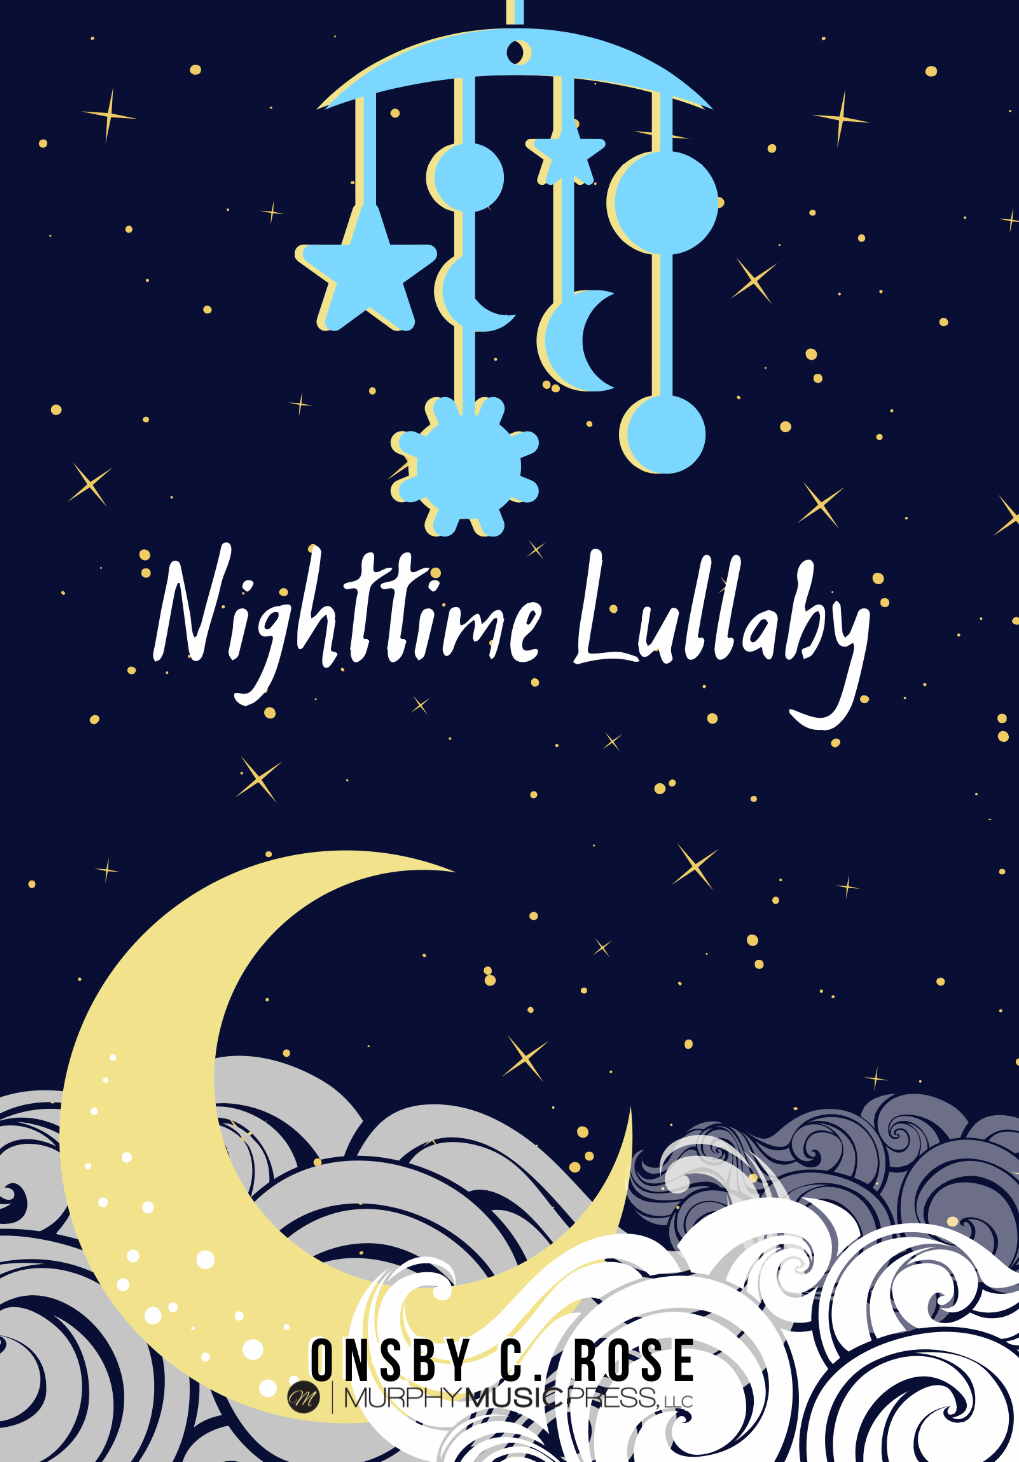 Nighttime Lullaby by Onsby C. Rose